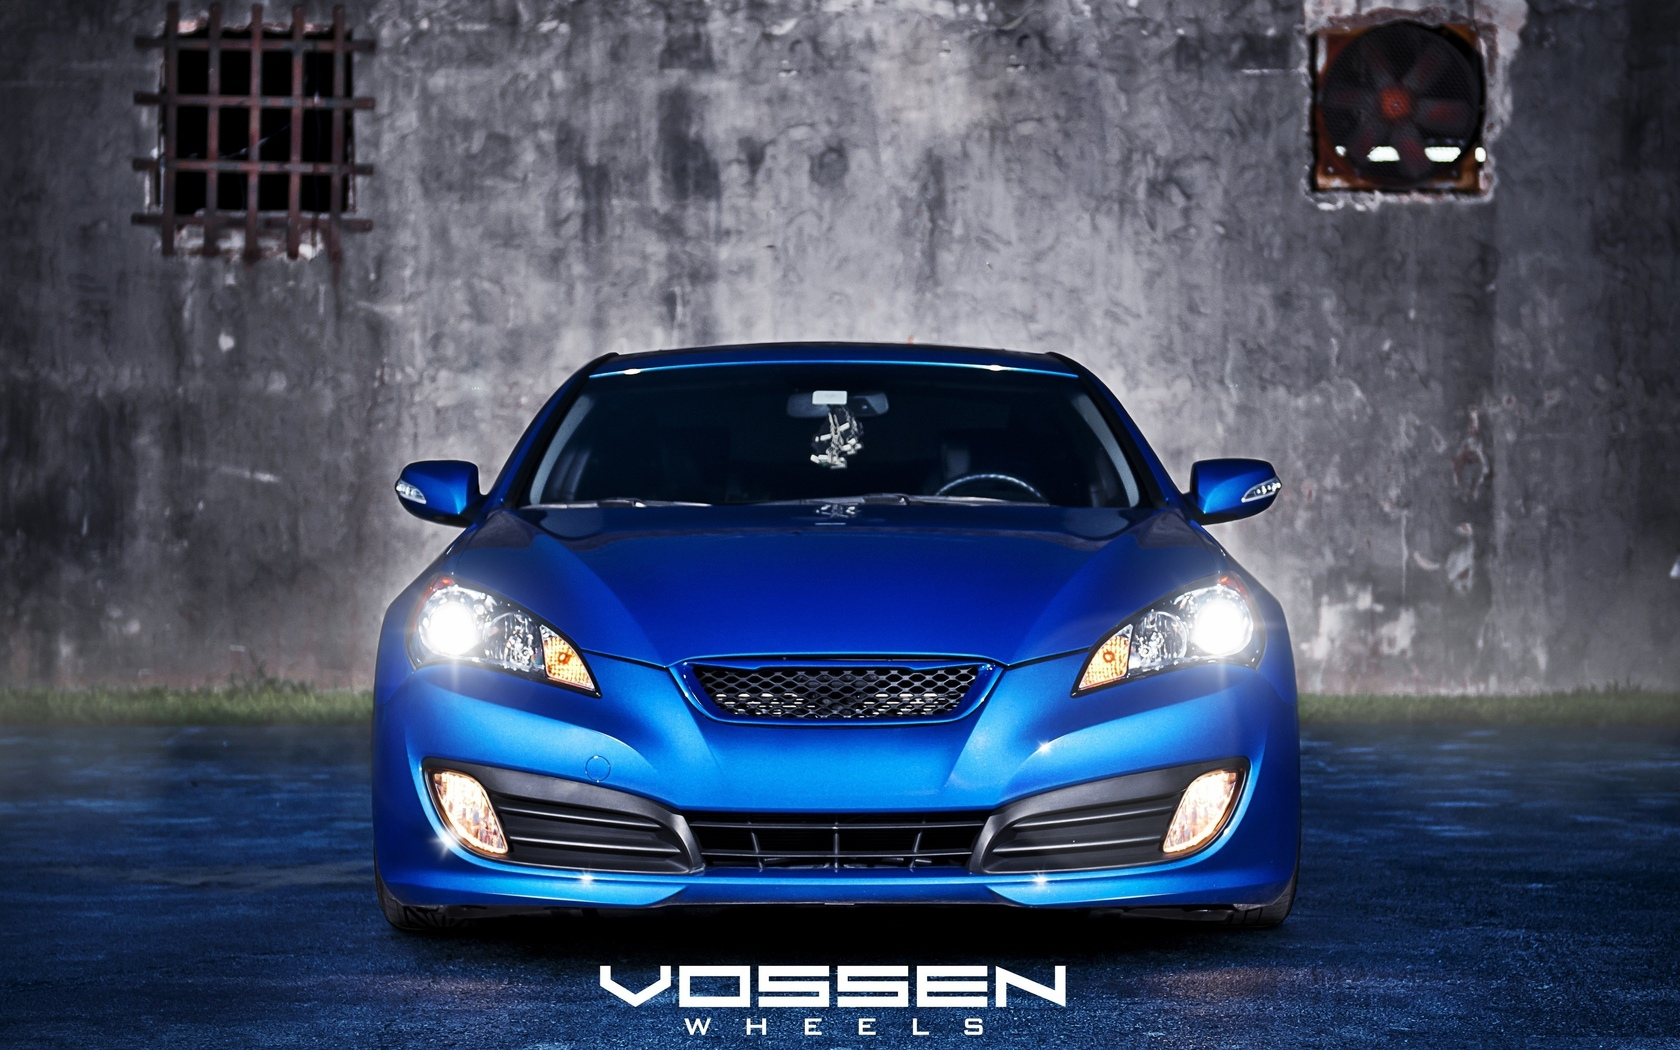 genesis, стена, хёндай, синий, hyundai, vossen wheels, blue, асфальт